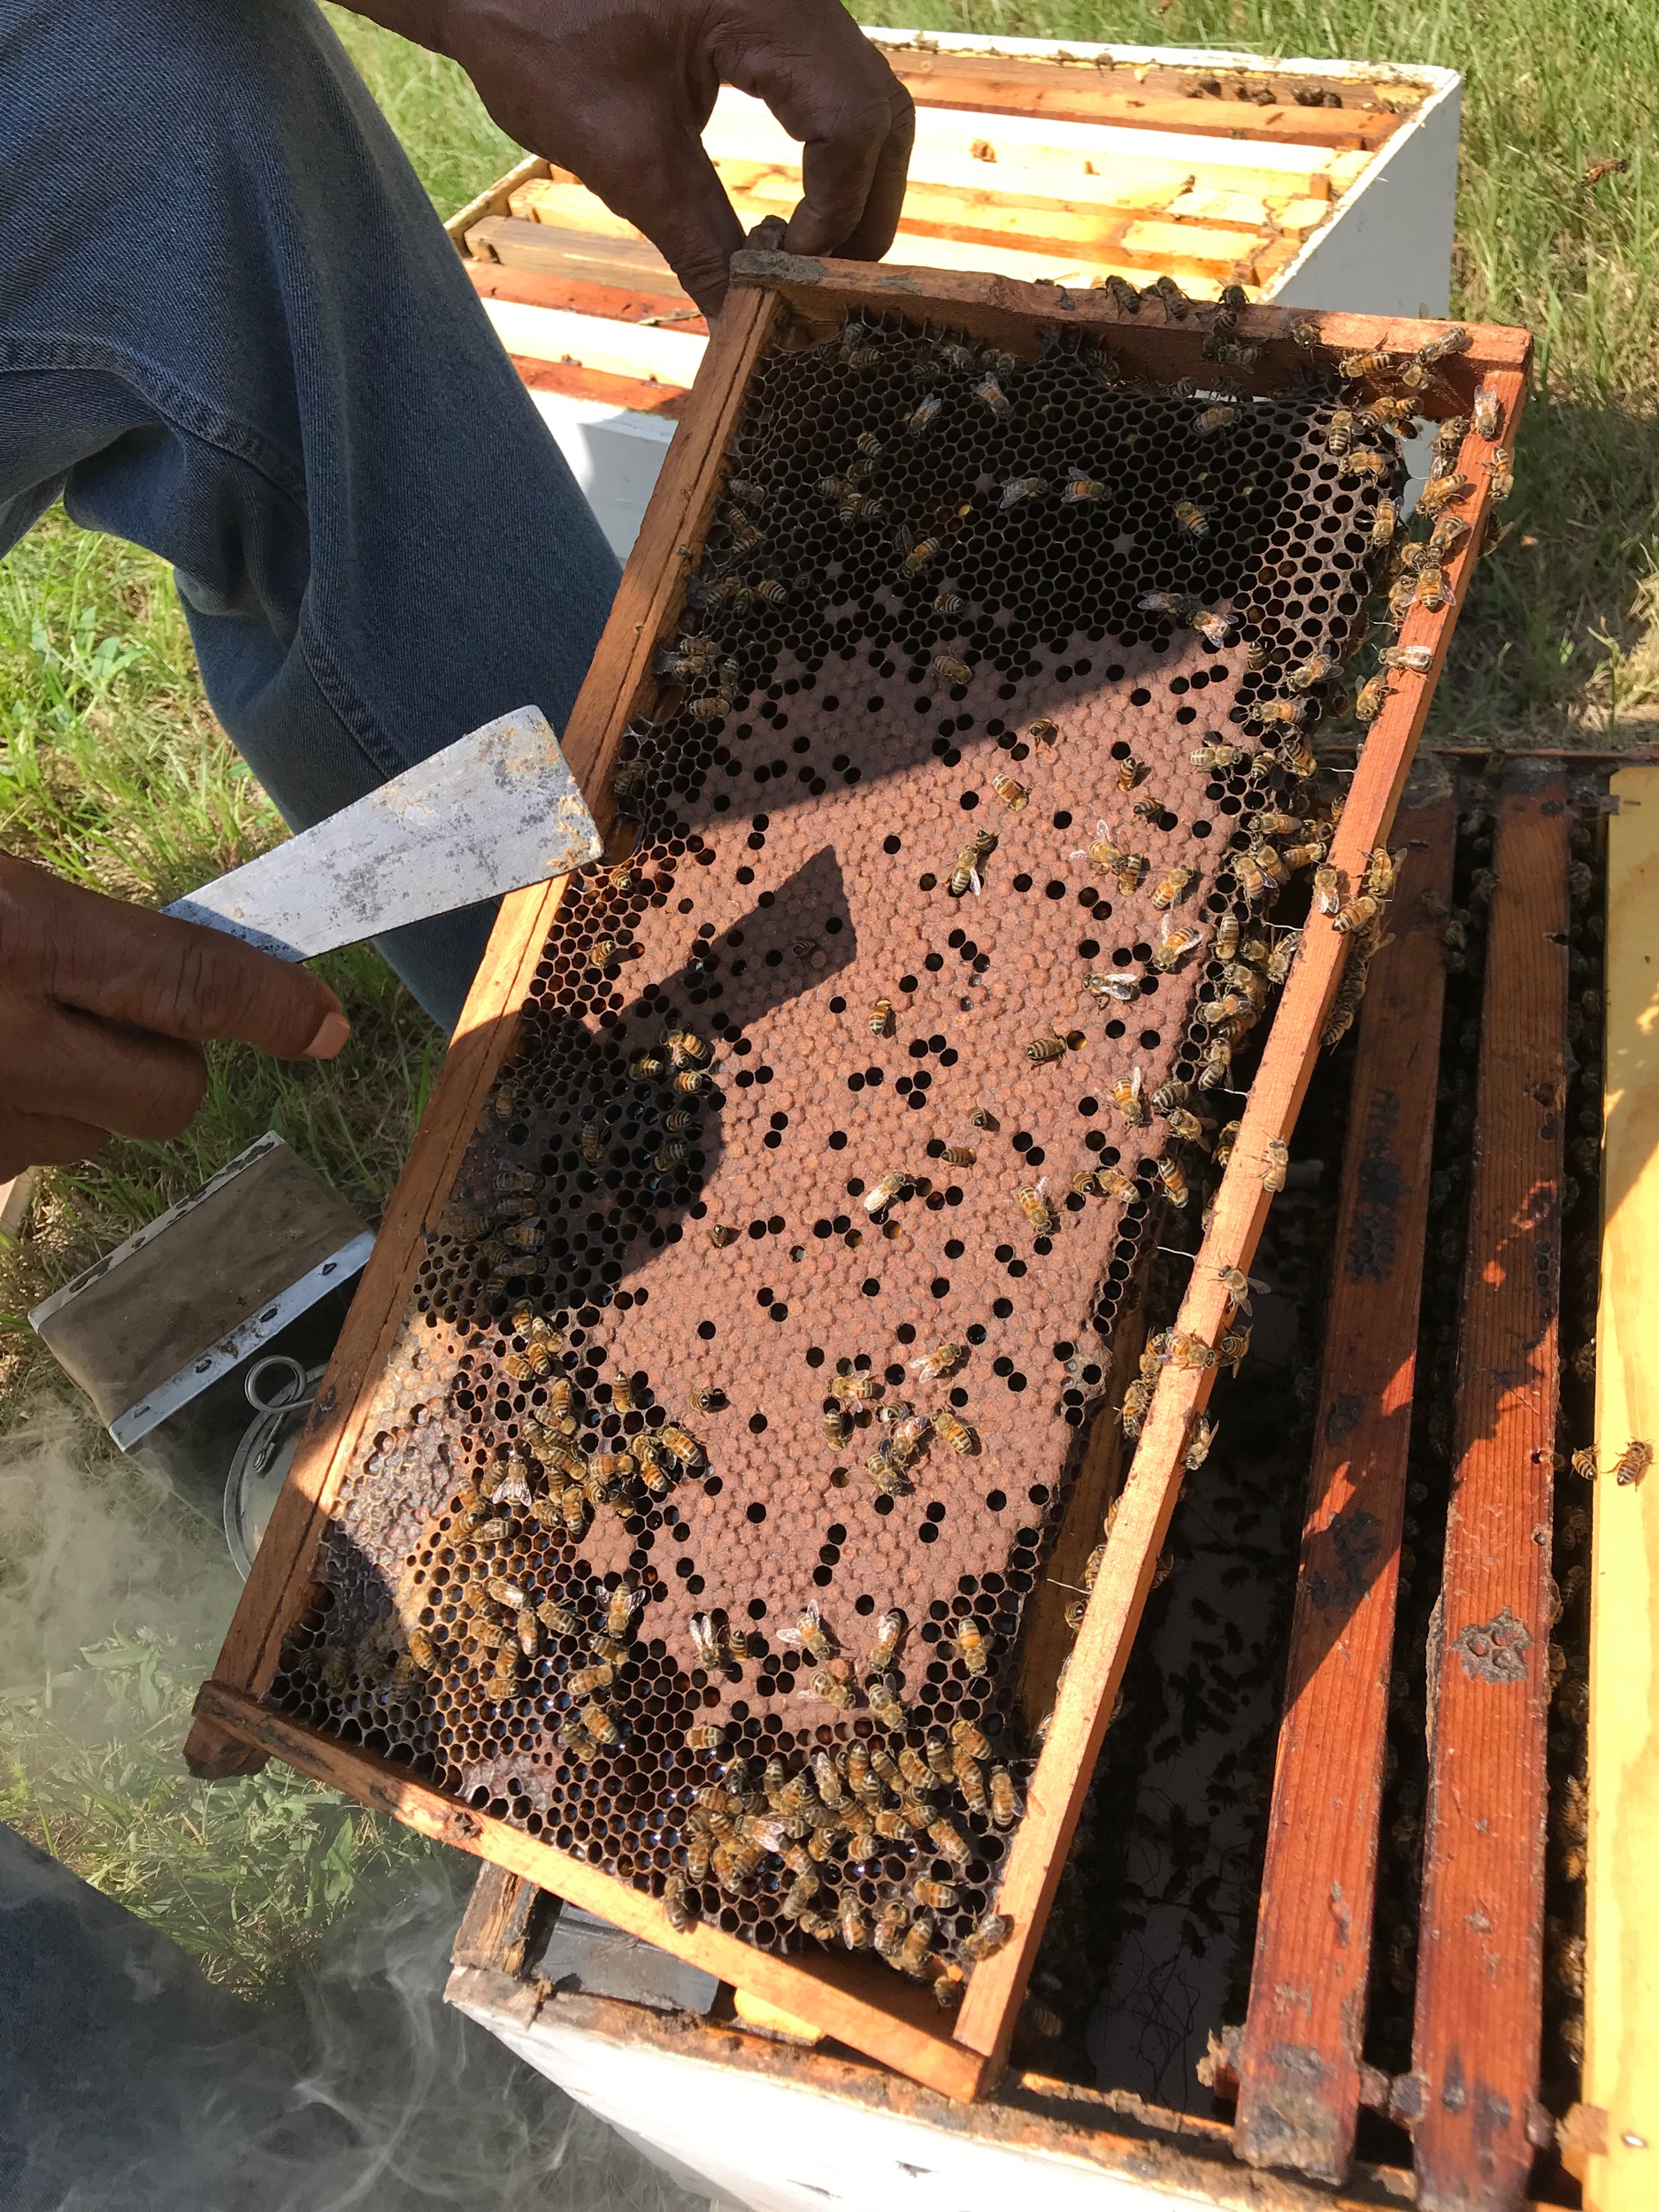 The bees carry on with their work as we inspect the first frame.